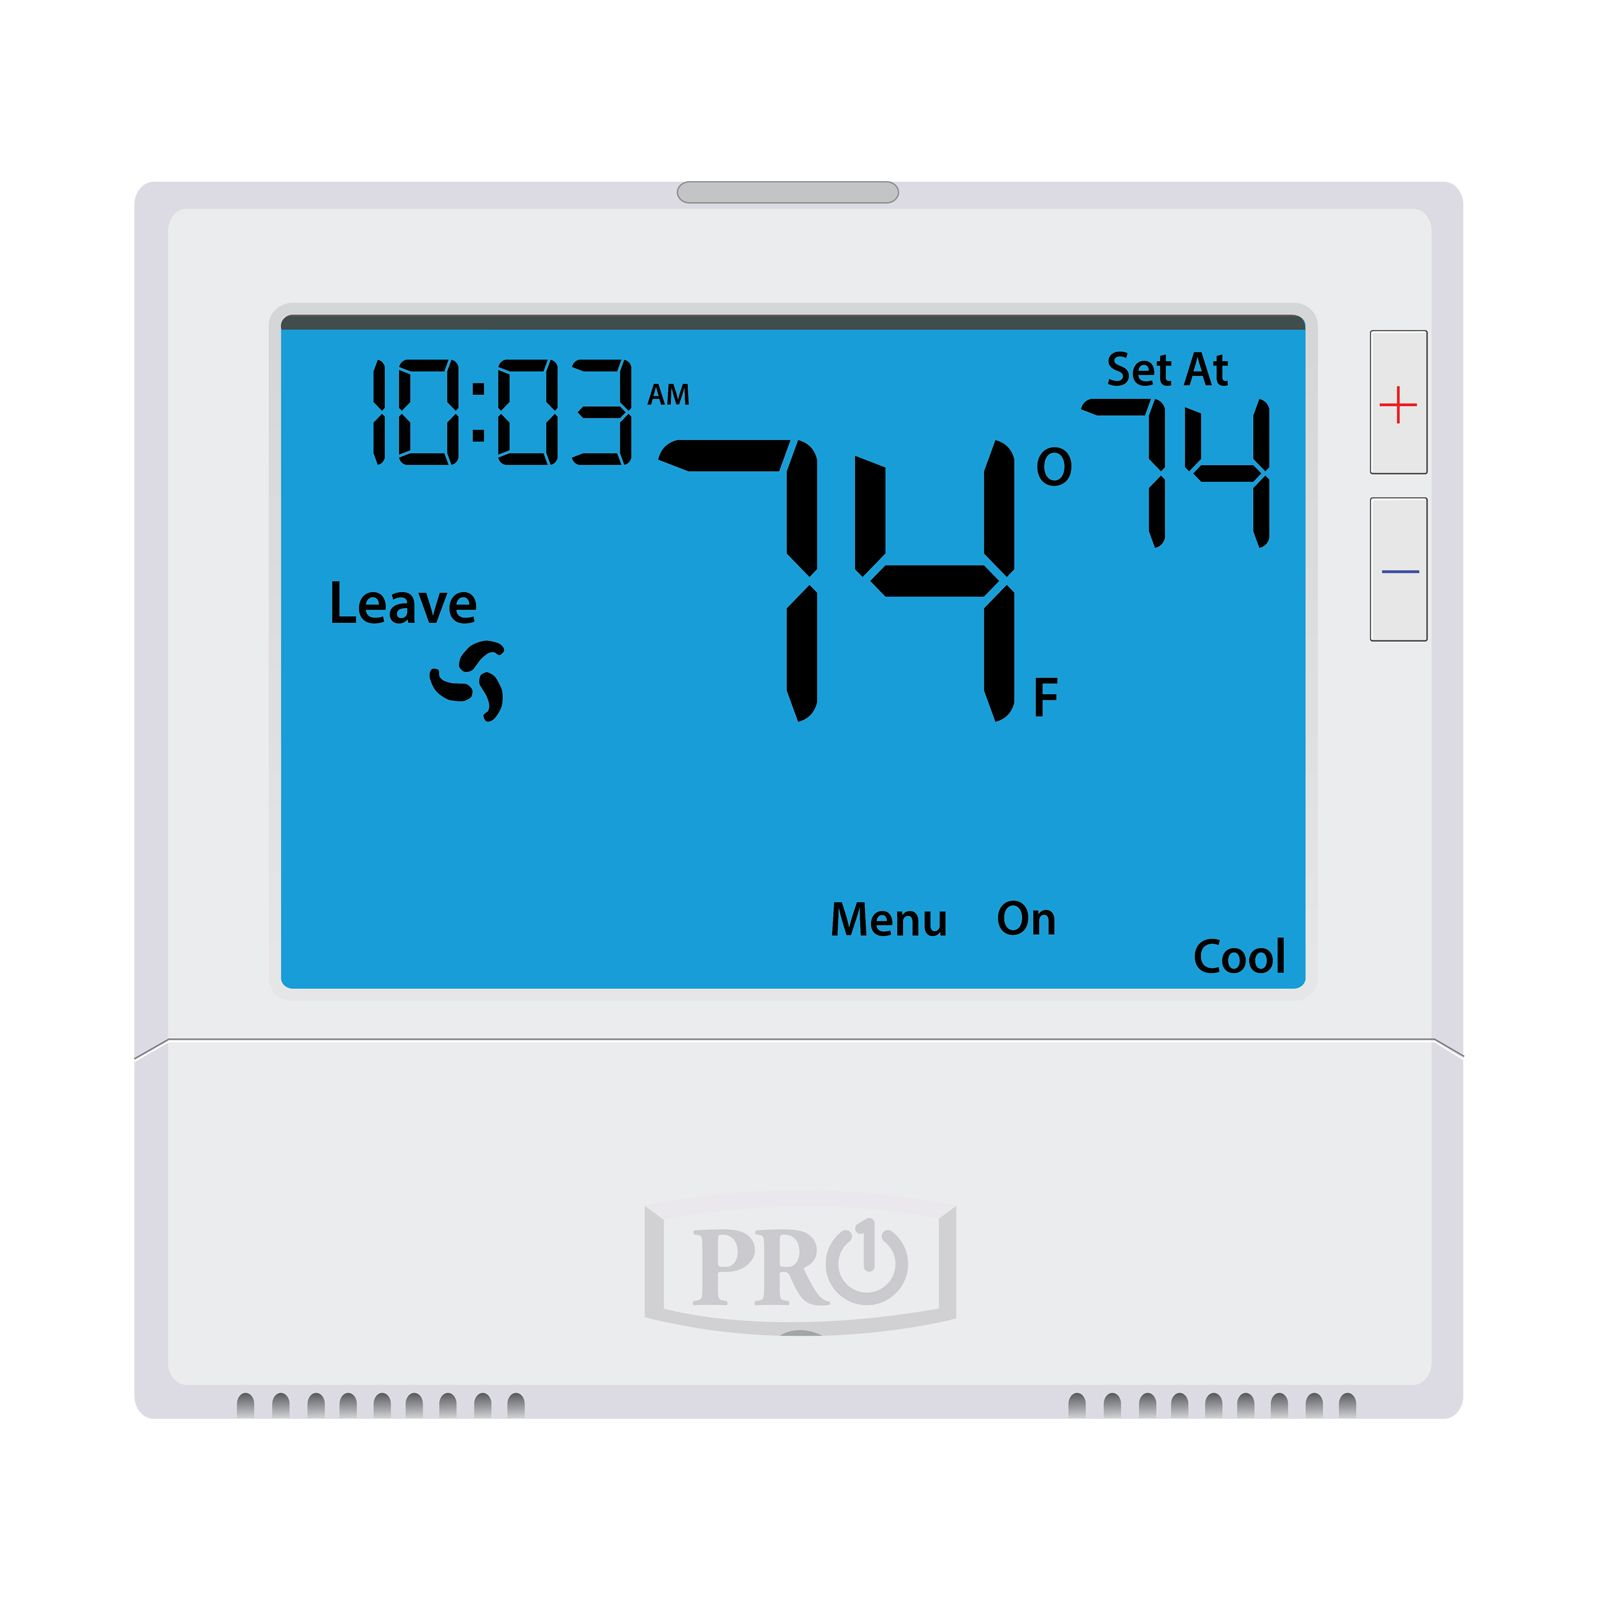 Pro1 T805 - 5+1+1 Or 7 Day Or Non-Programmable Thermostat, 1H/1C With 8 Square Inch Display